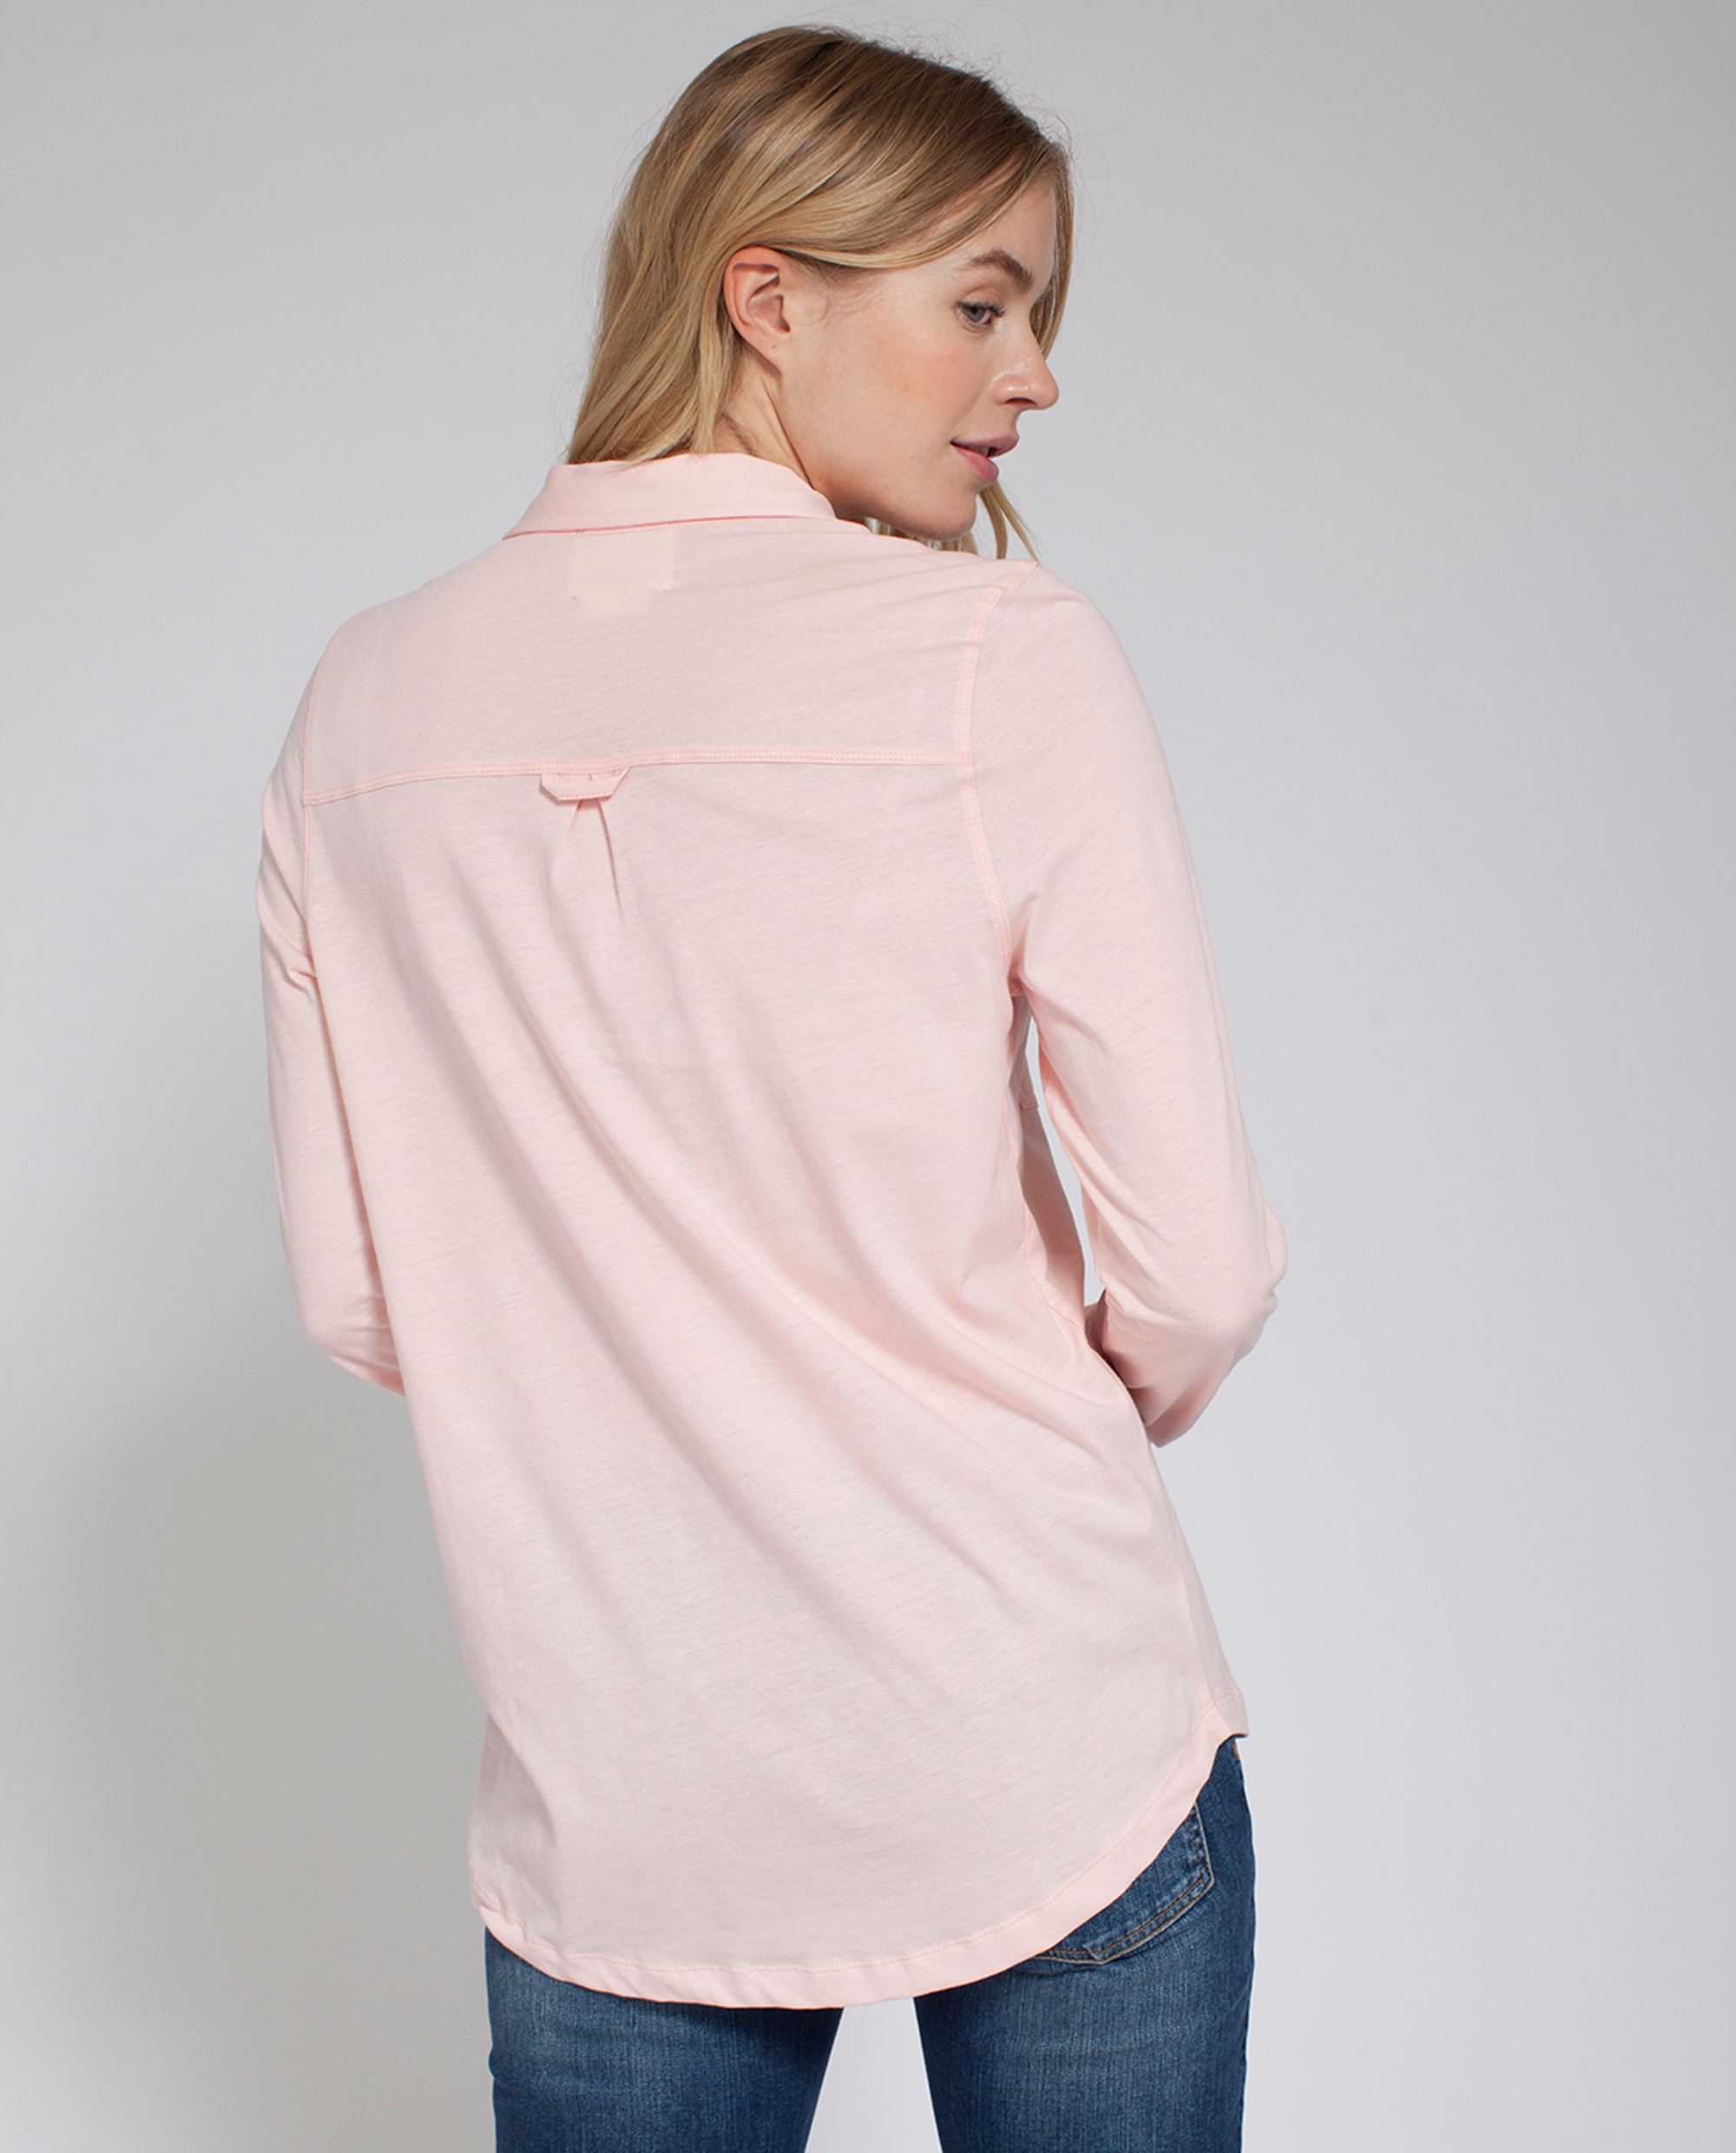 Olivia Jersey Shirt, English Rose Pink